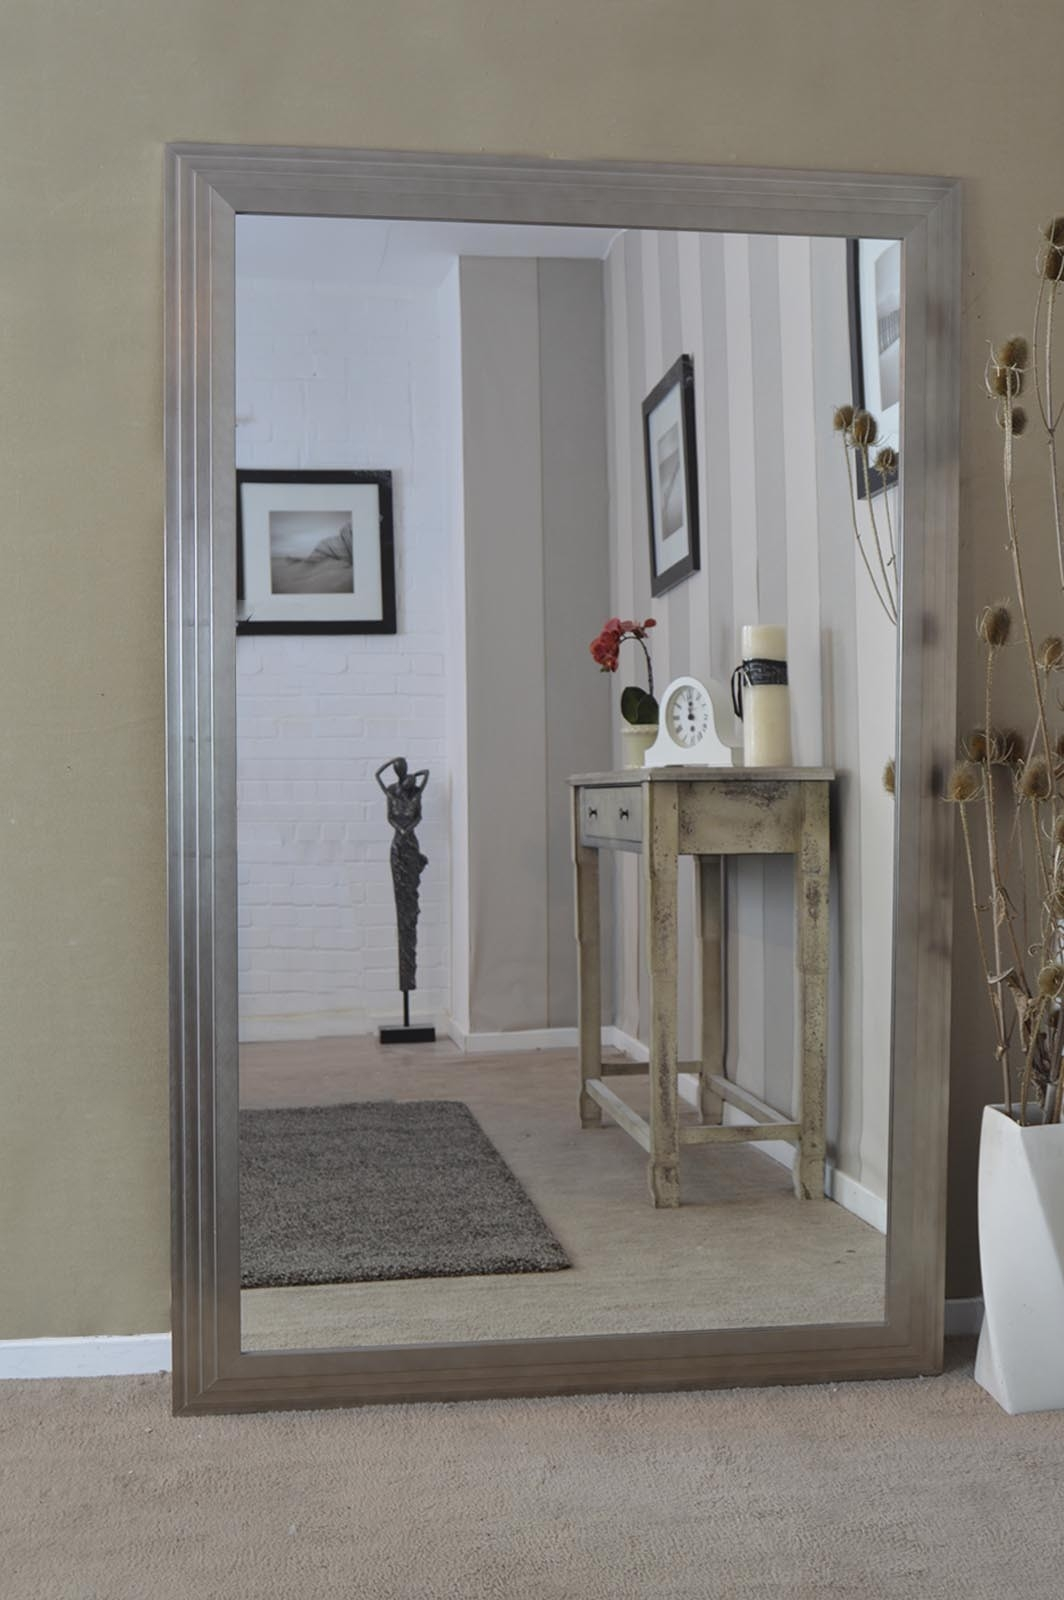 Big Mirrors For Sale 12 Enchanting Ideas With Large Leaning Regarding Oversized Mirrors For Sale (View 2 of 15)